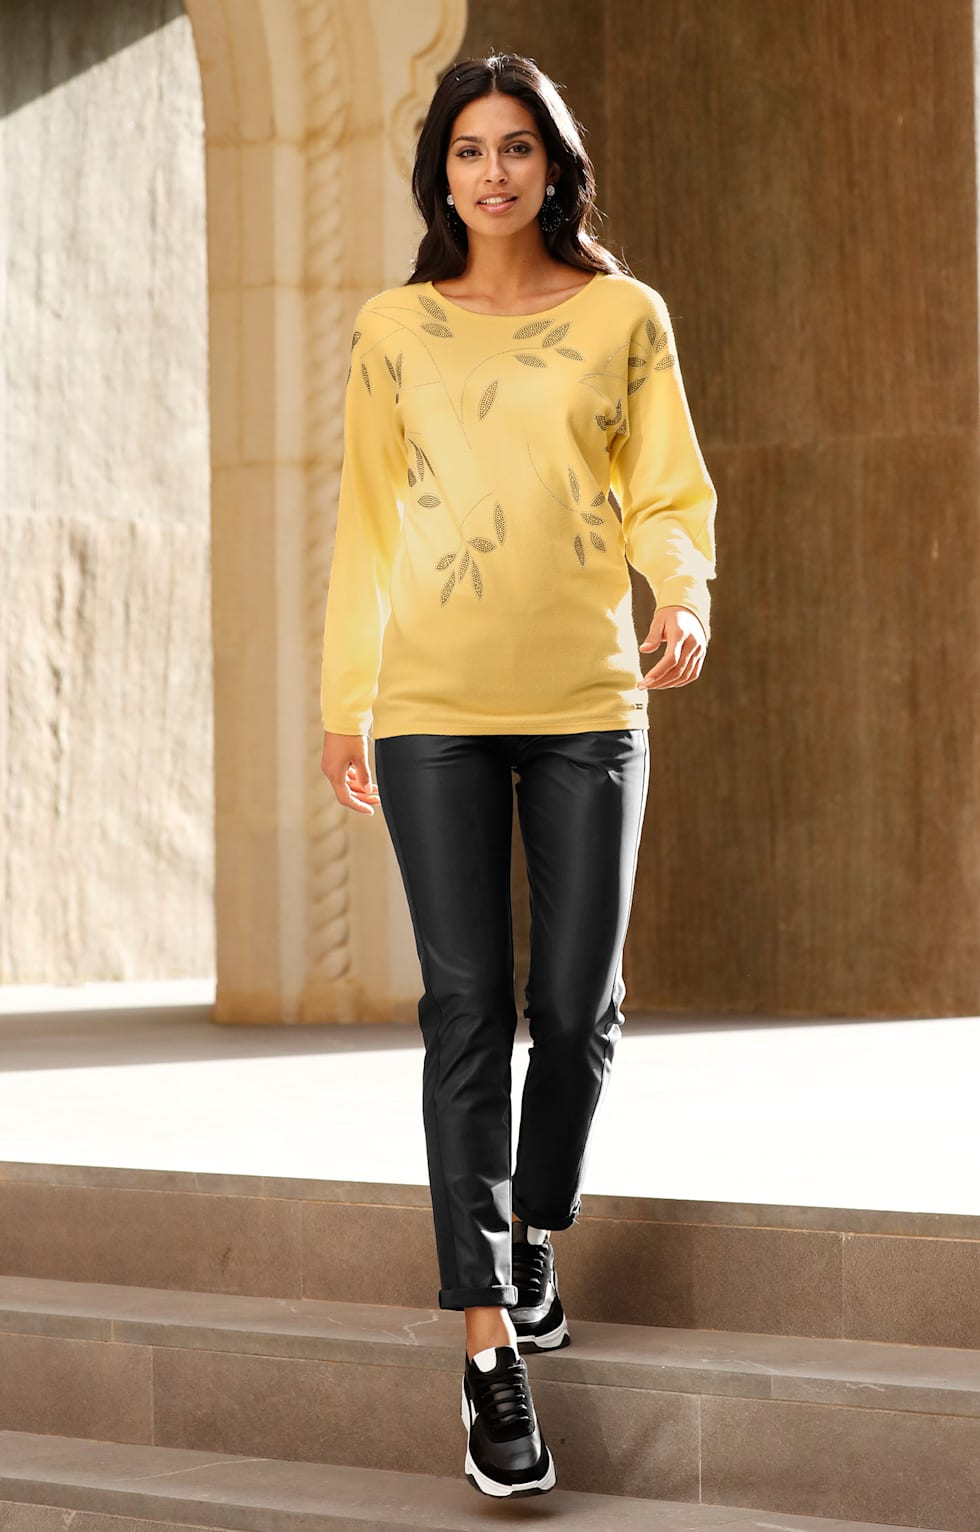 Home_HW20_KW38_39_Trendoutfit_Black&Yellow_Outfit